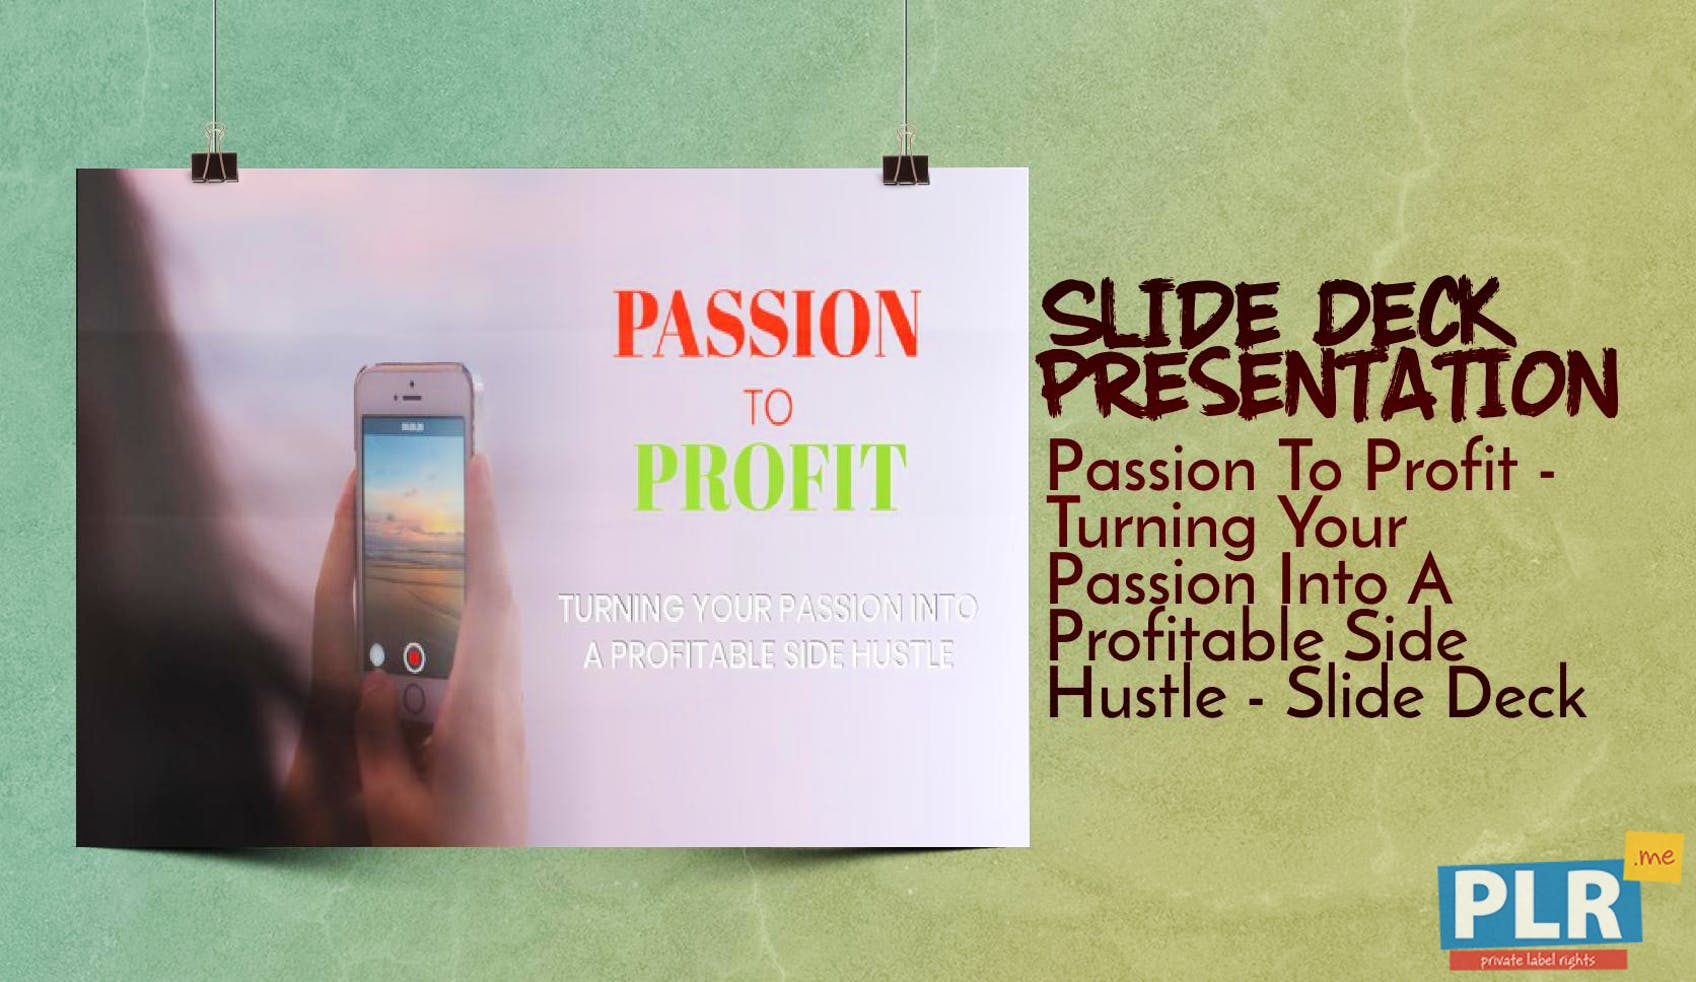 Passion To Profit - Turning Your Passion Into A Profitable Side Hustle - Slide Deck